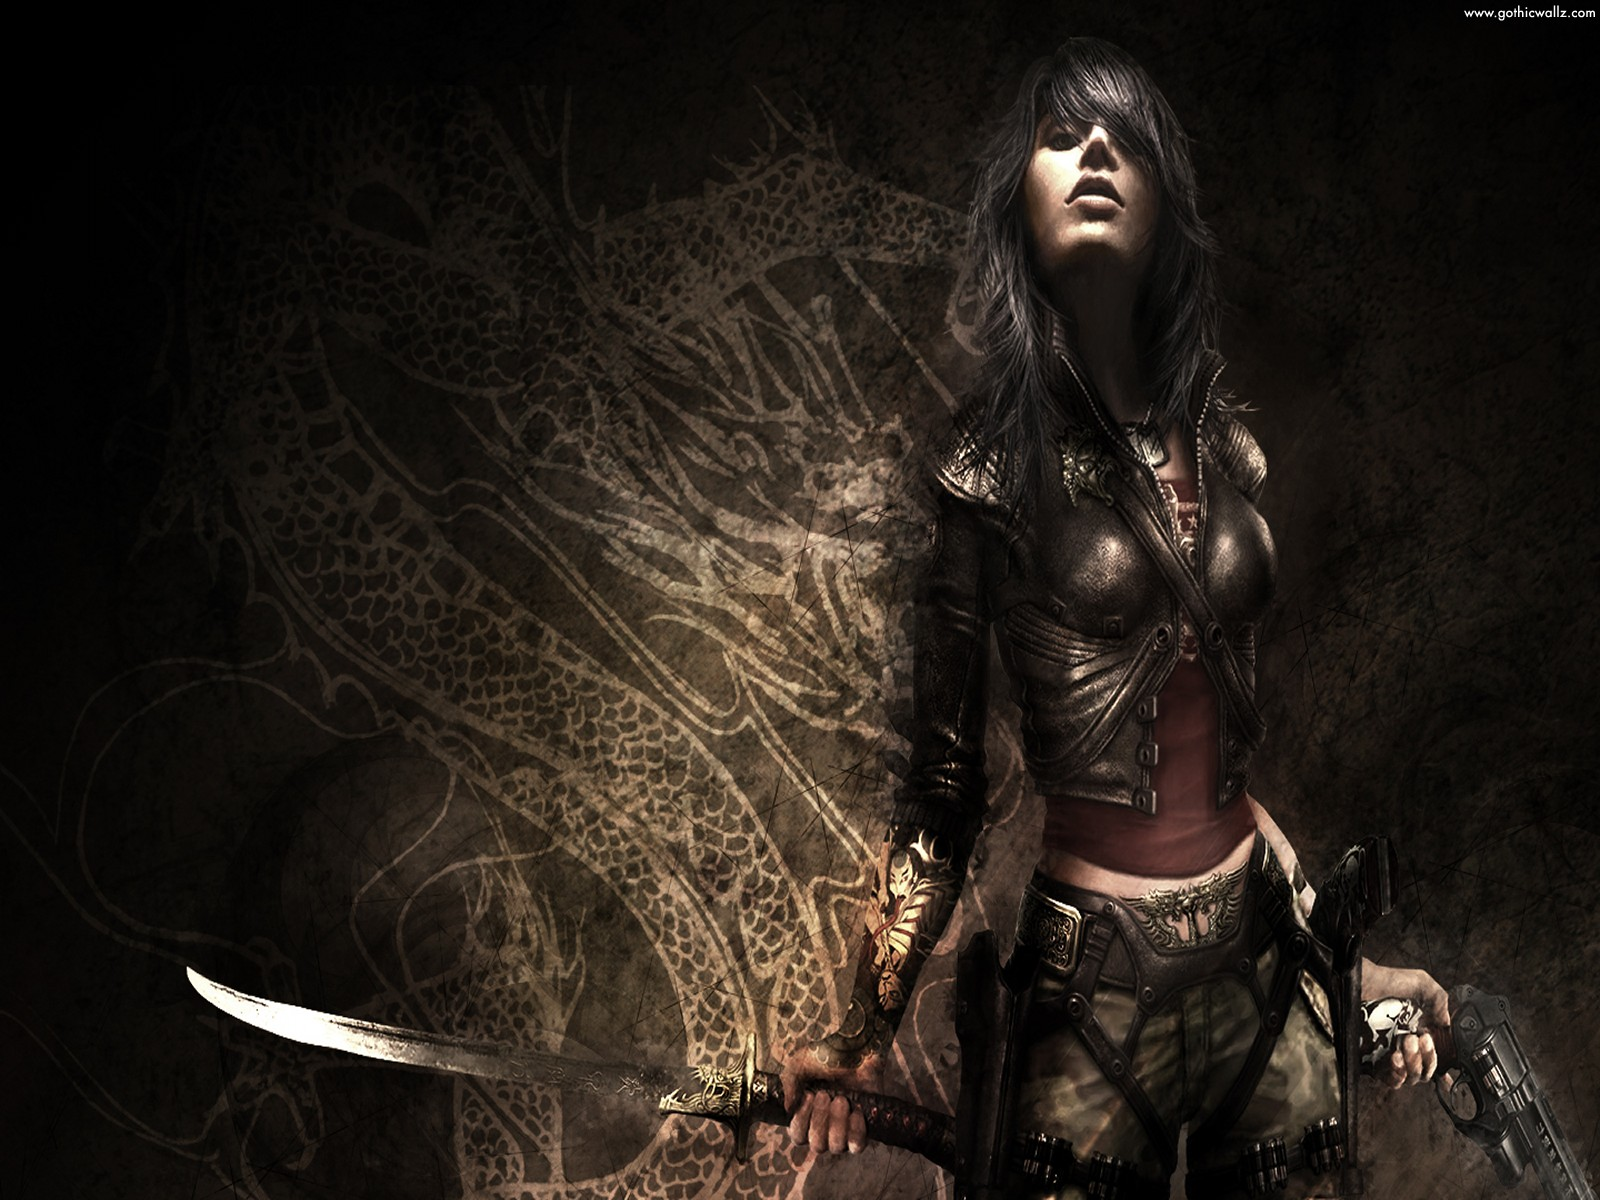 Dark Gothic Wallpaper Download